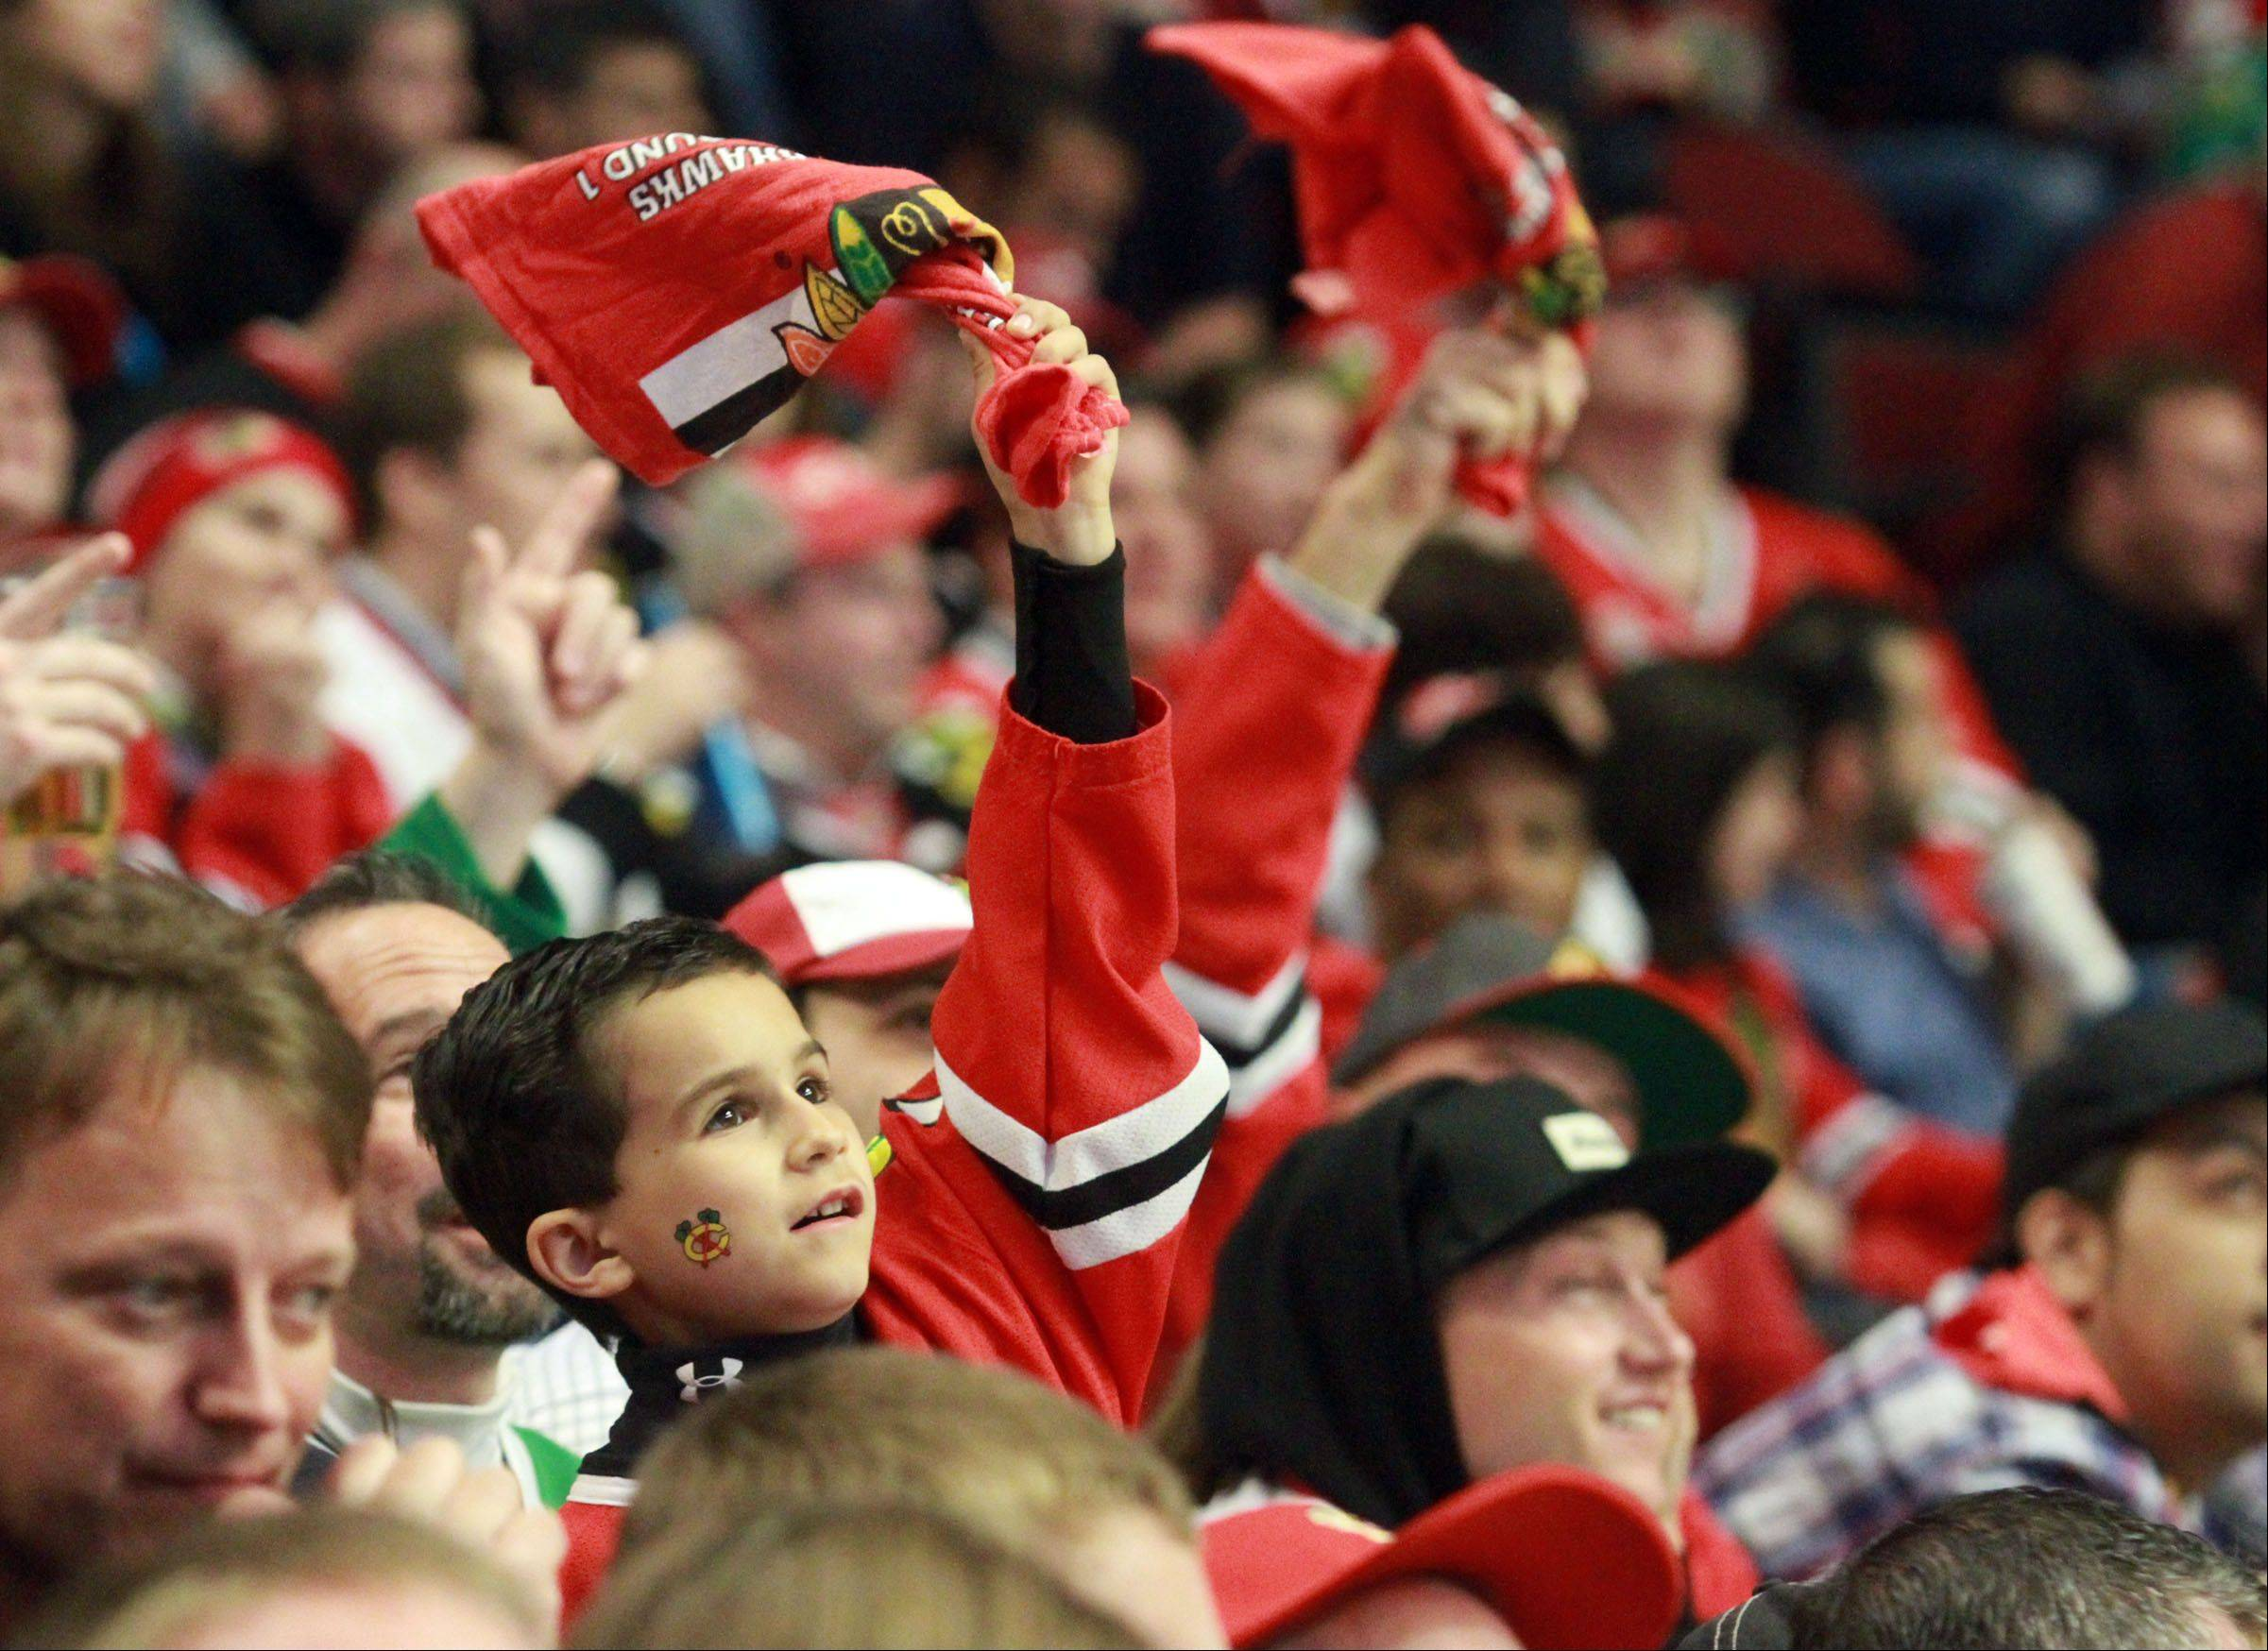 Young or old, Blackhawks fans love to dress the part and show their true colors in support of the franchise.